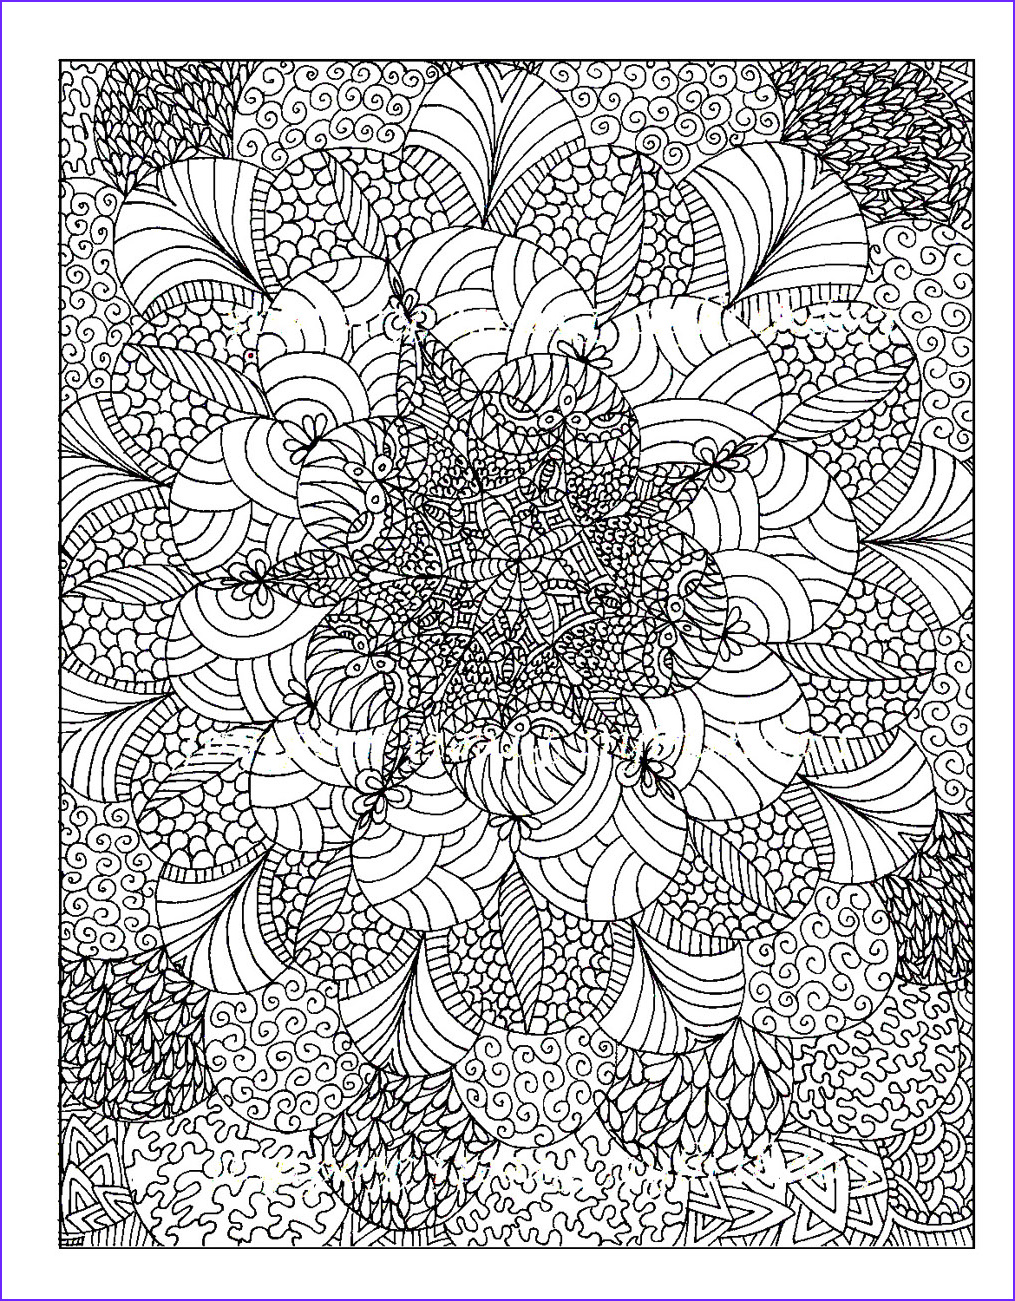 Coloring Stress Unique Images Colouring for Adults Anti Stress Colouring Printables